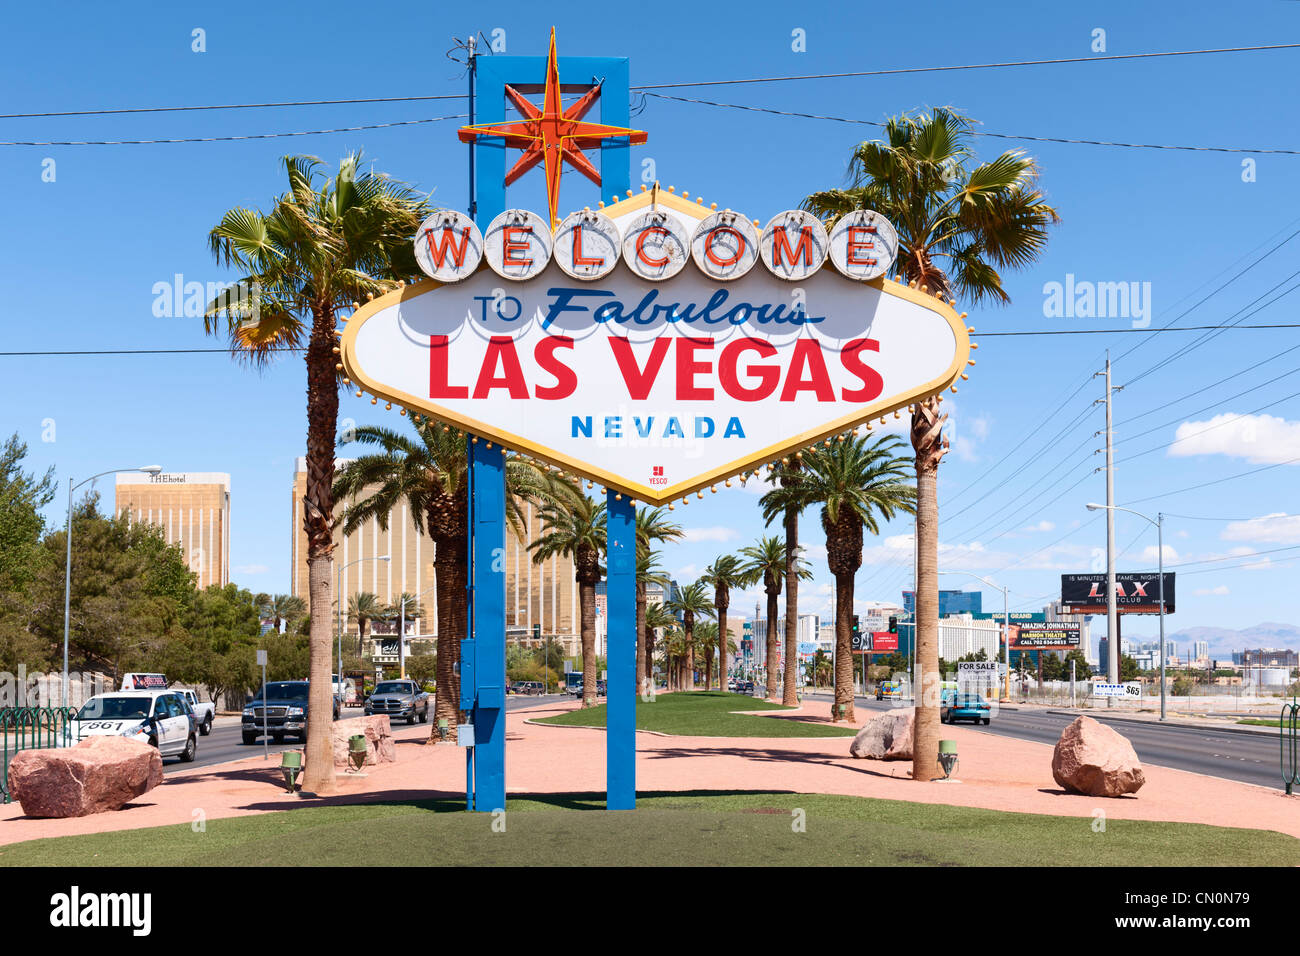 welcome to fabulous las vegas sign stock photos welcome to fabulous las vegas sign stock. Black Bedroom Furniture Sets. Home Design Ideas